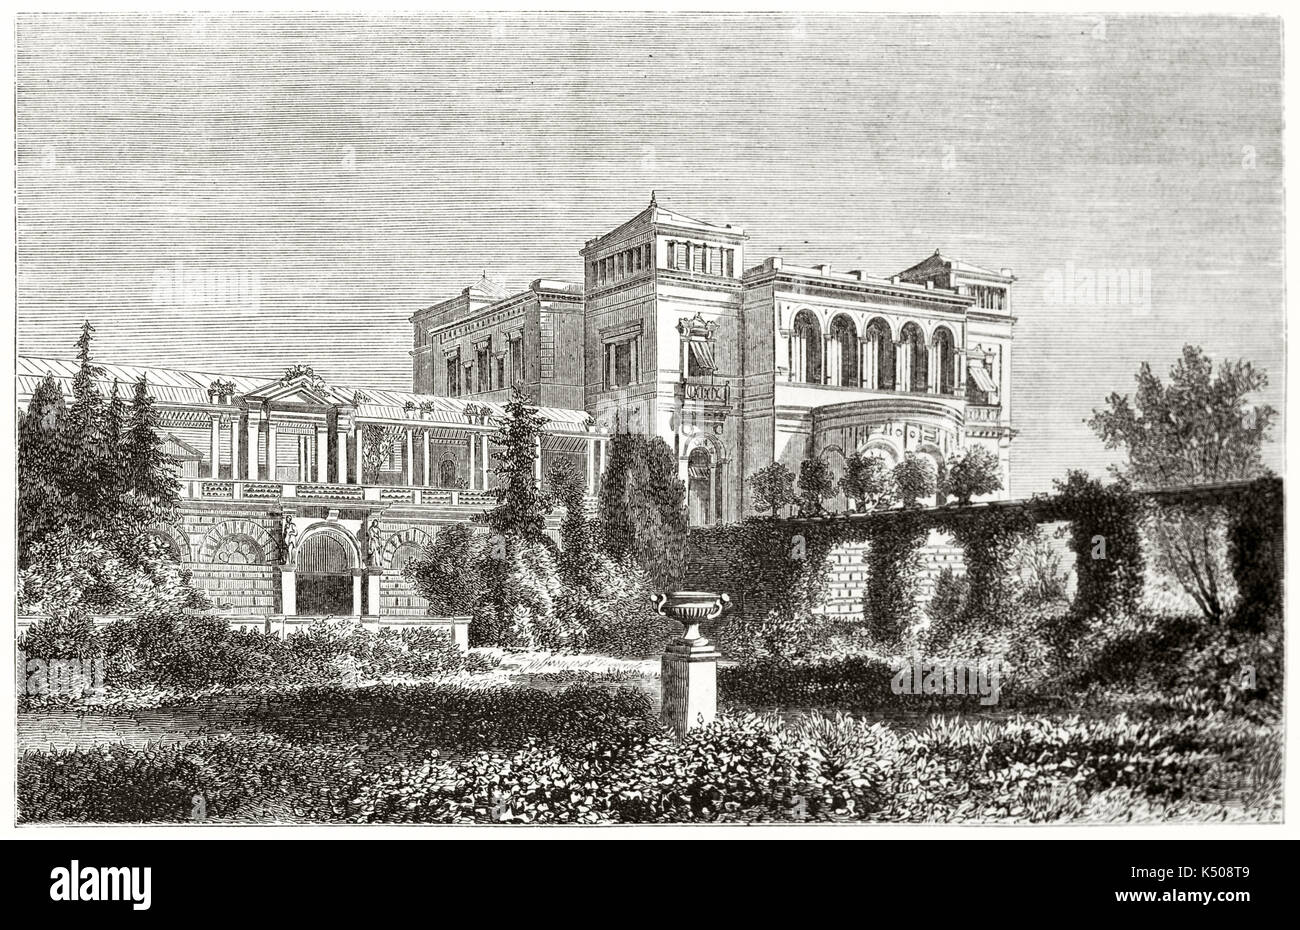 Magnificent ancient view on Villa Berg, edifice surrounded by luxuriant garden and summer home of Crown Prince Karl Stuttgart surroundings Germany. By Lancelot published on Le Tour du Monde Paris 1862 - Stock Image